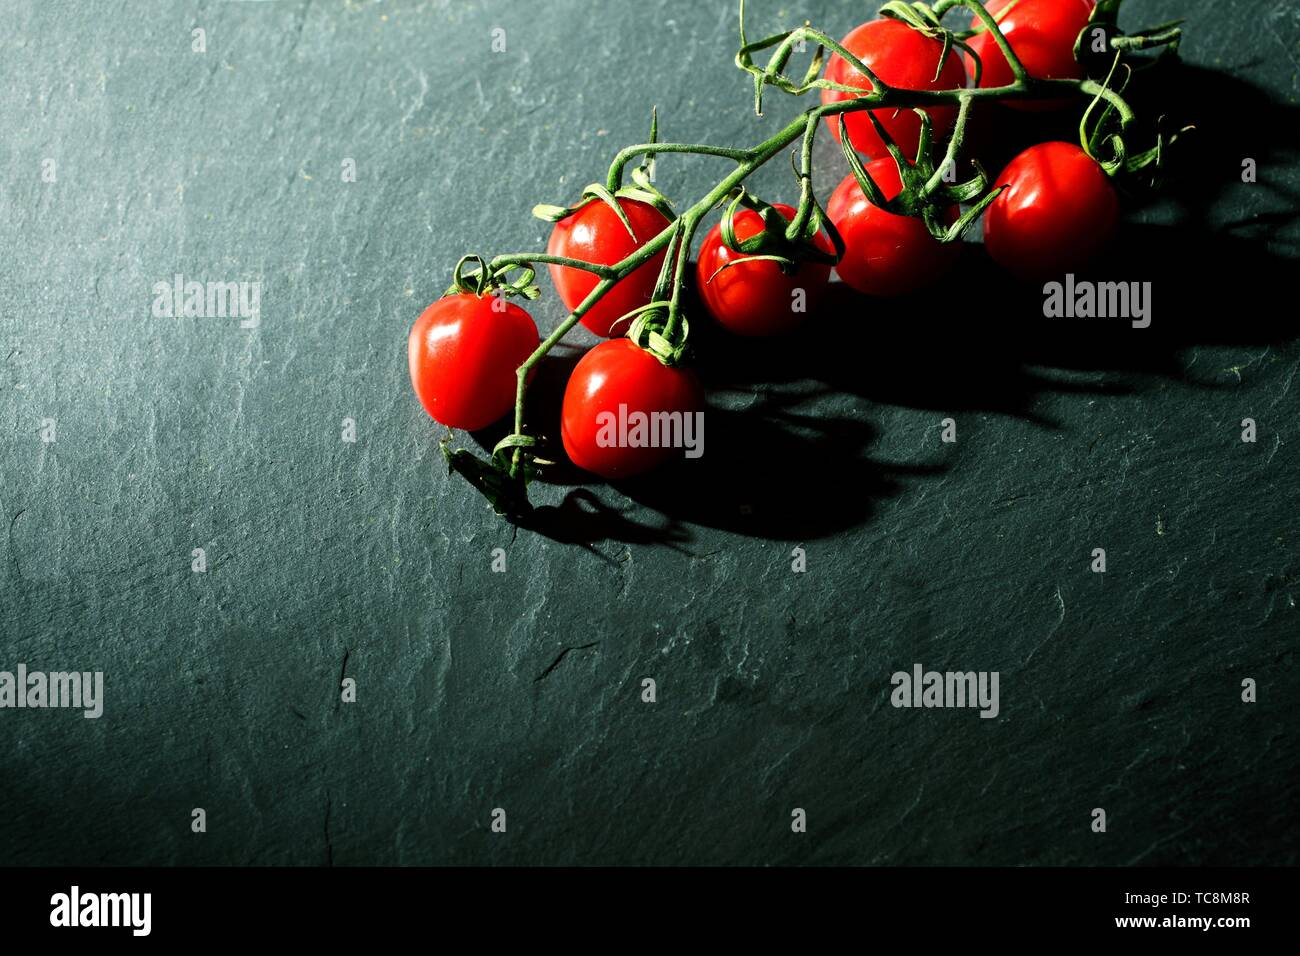 Cherry tomatoes on grey background - Stock Image